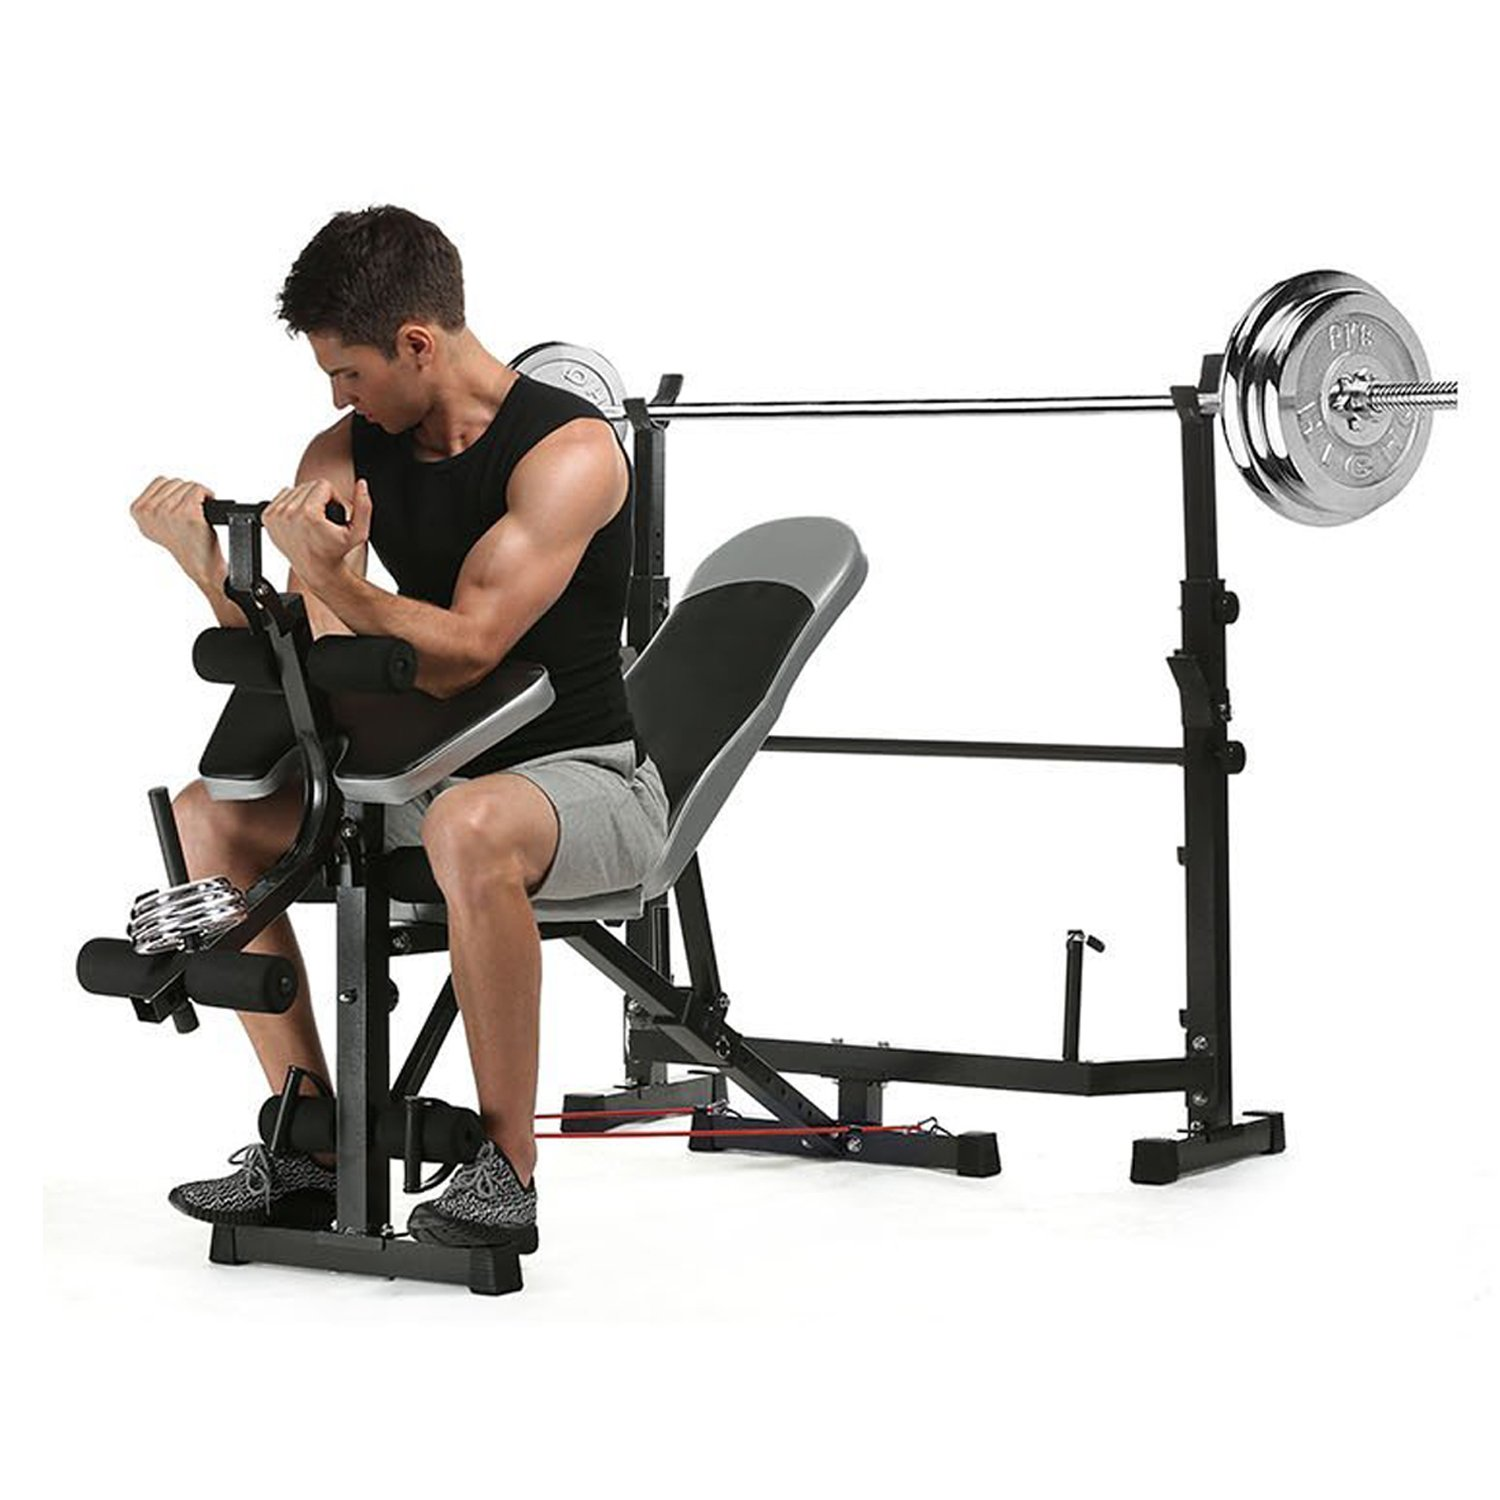 Simlive Olympic Weight Bench, Multi-Function Adjustable Weight Bench with Preacher Curl, Leg Developer for Indoor Exercise (UK Stock)